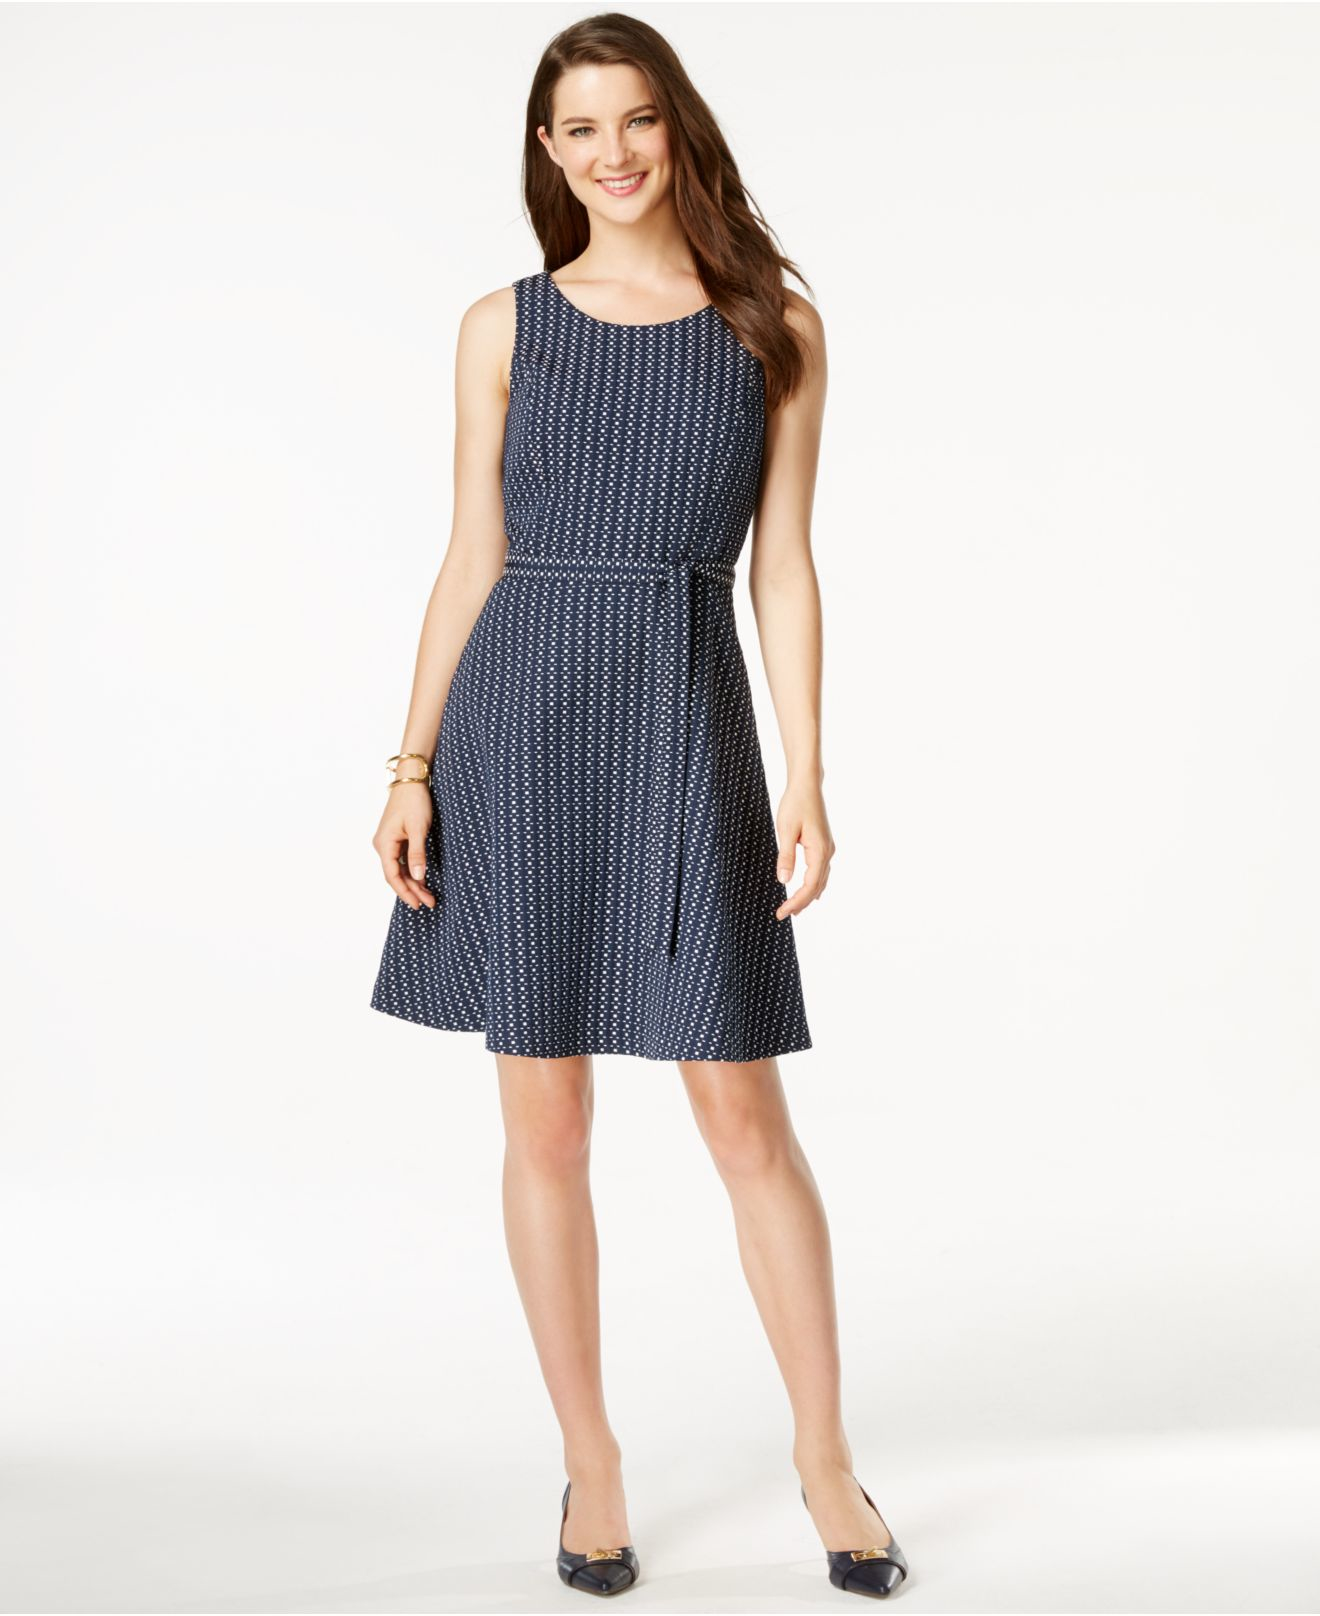 4f4f4feee1 Lyst - Tommy Hilfiger Belted Fit   Flare Dress in Blue